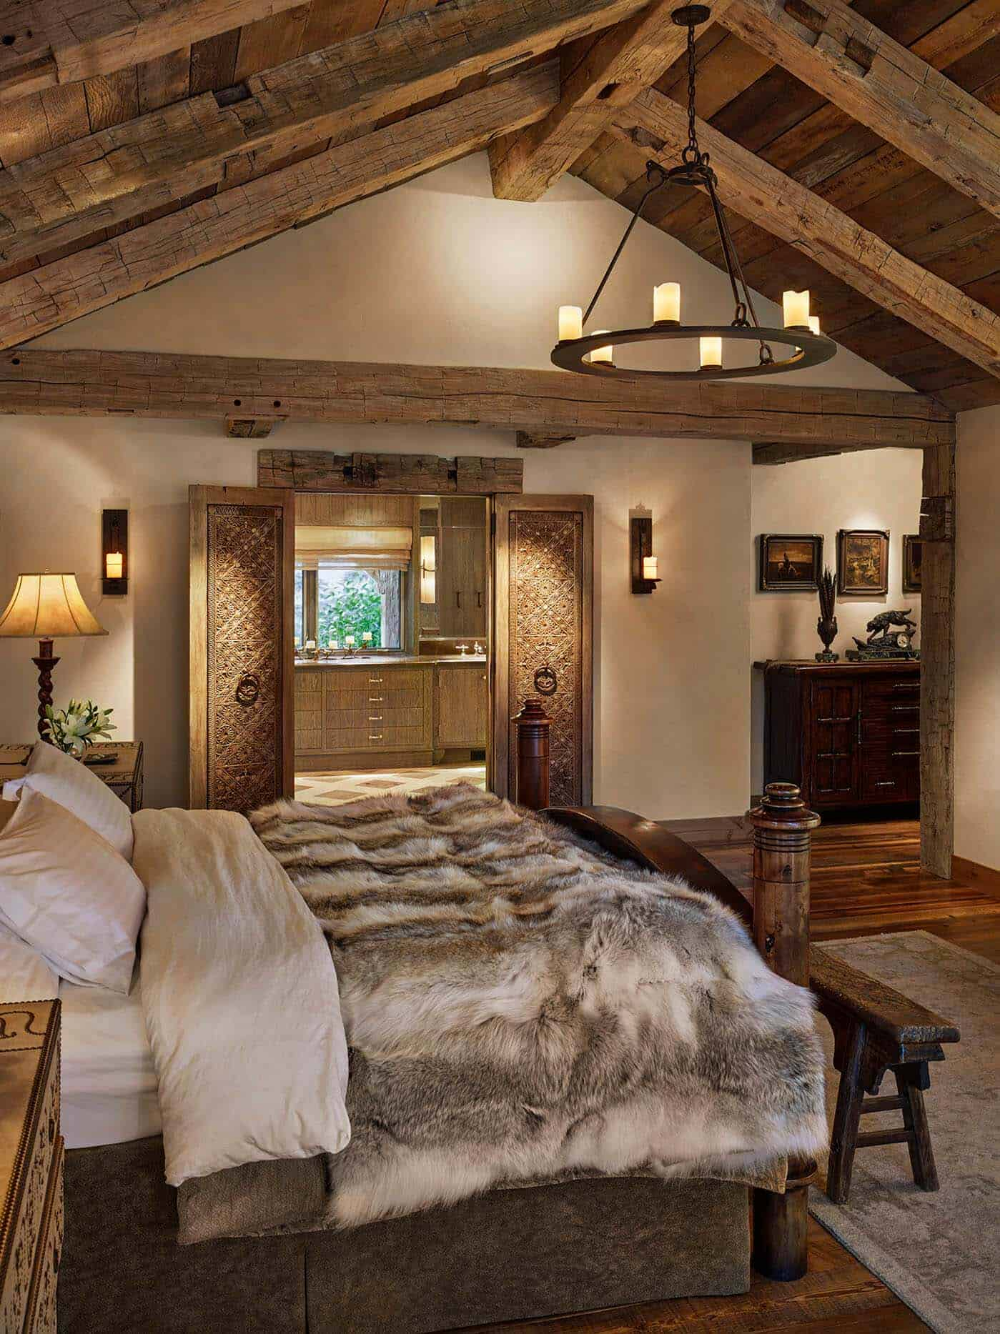 Breathtaking rustic